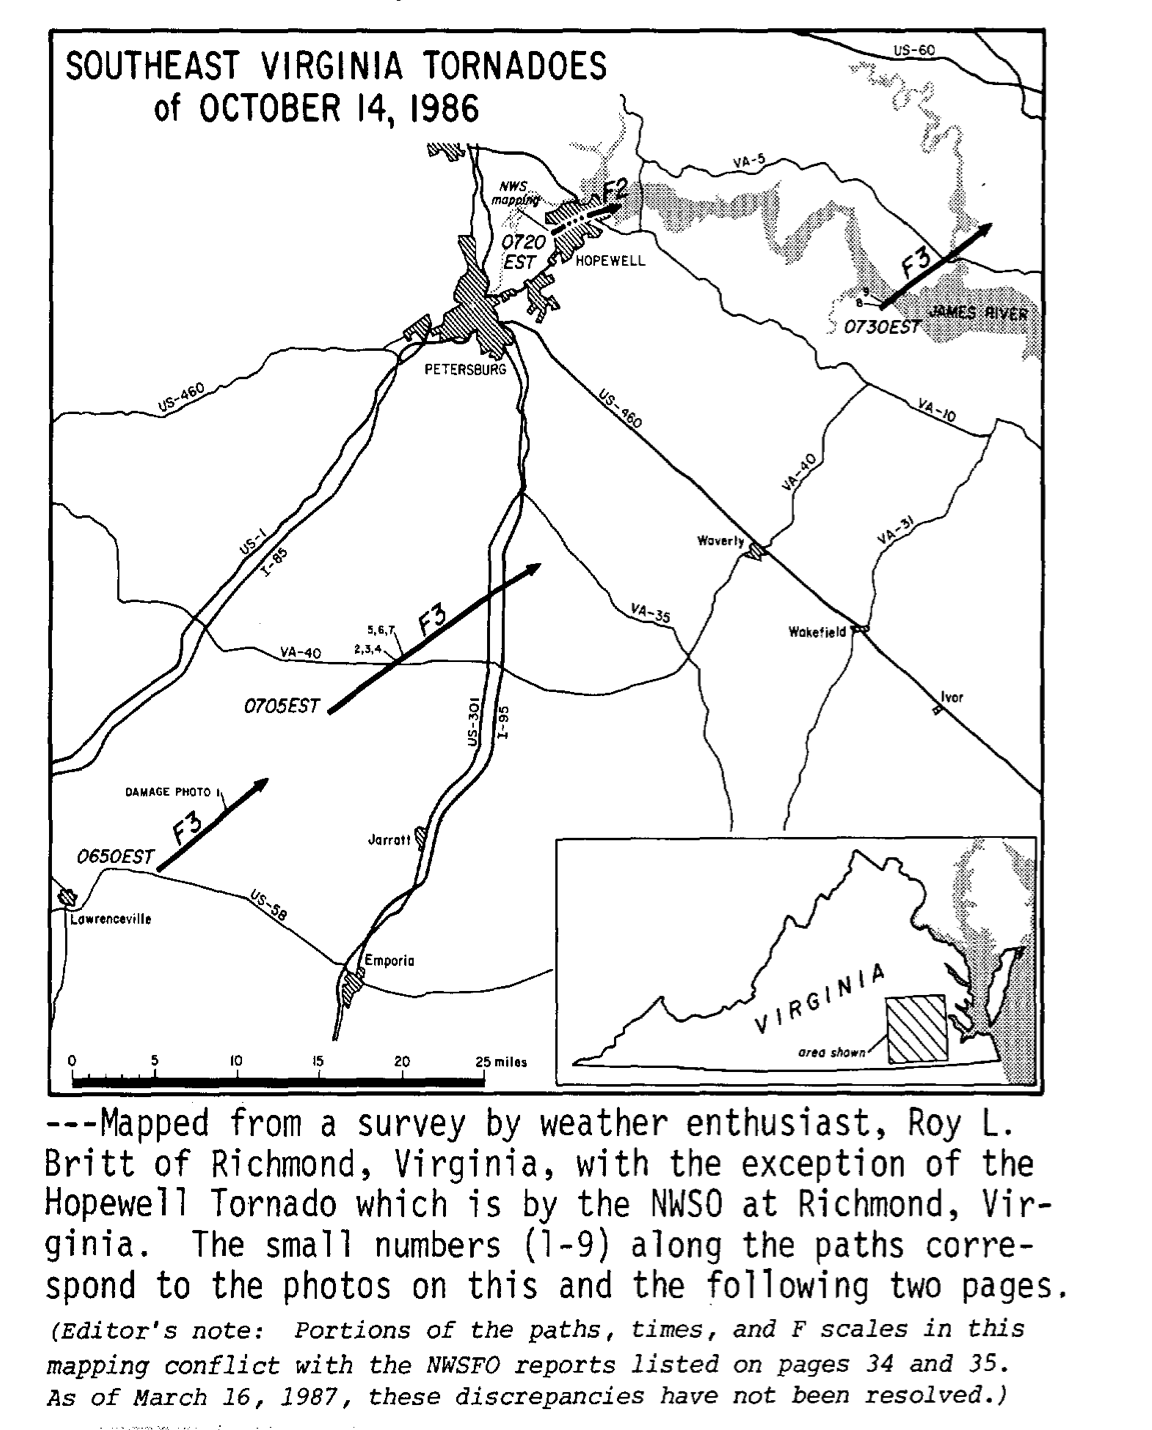 Virginia Tornadoes of October 14, 1986